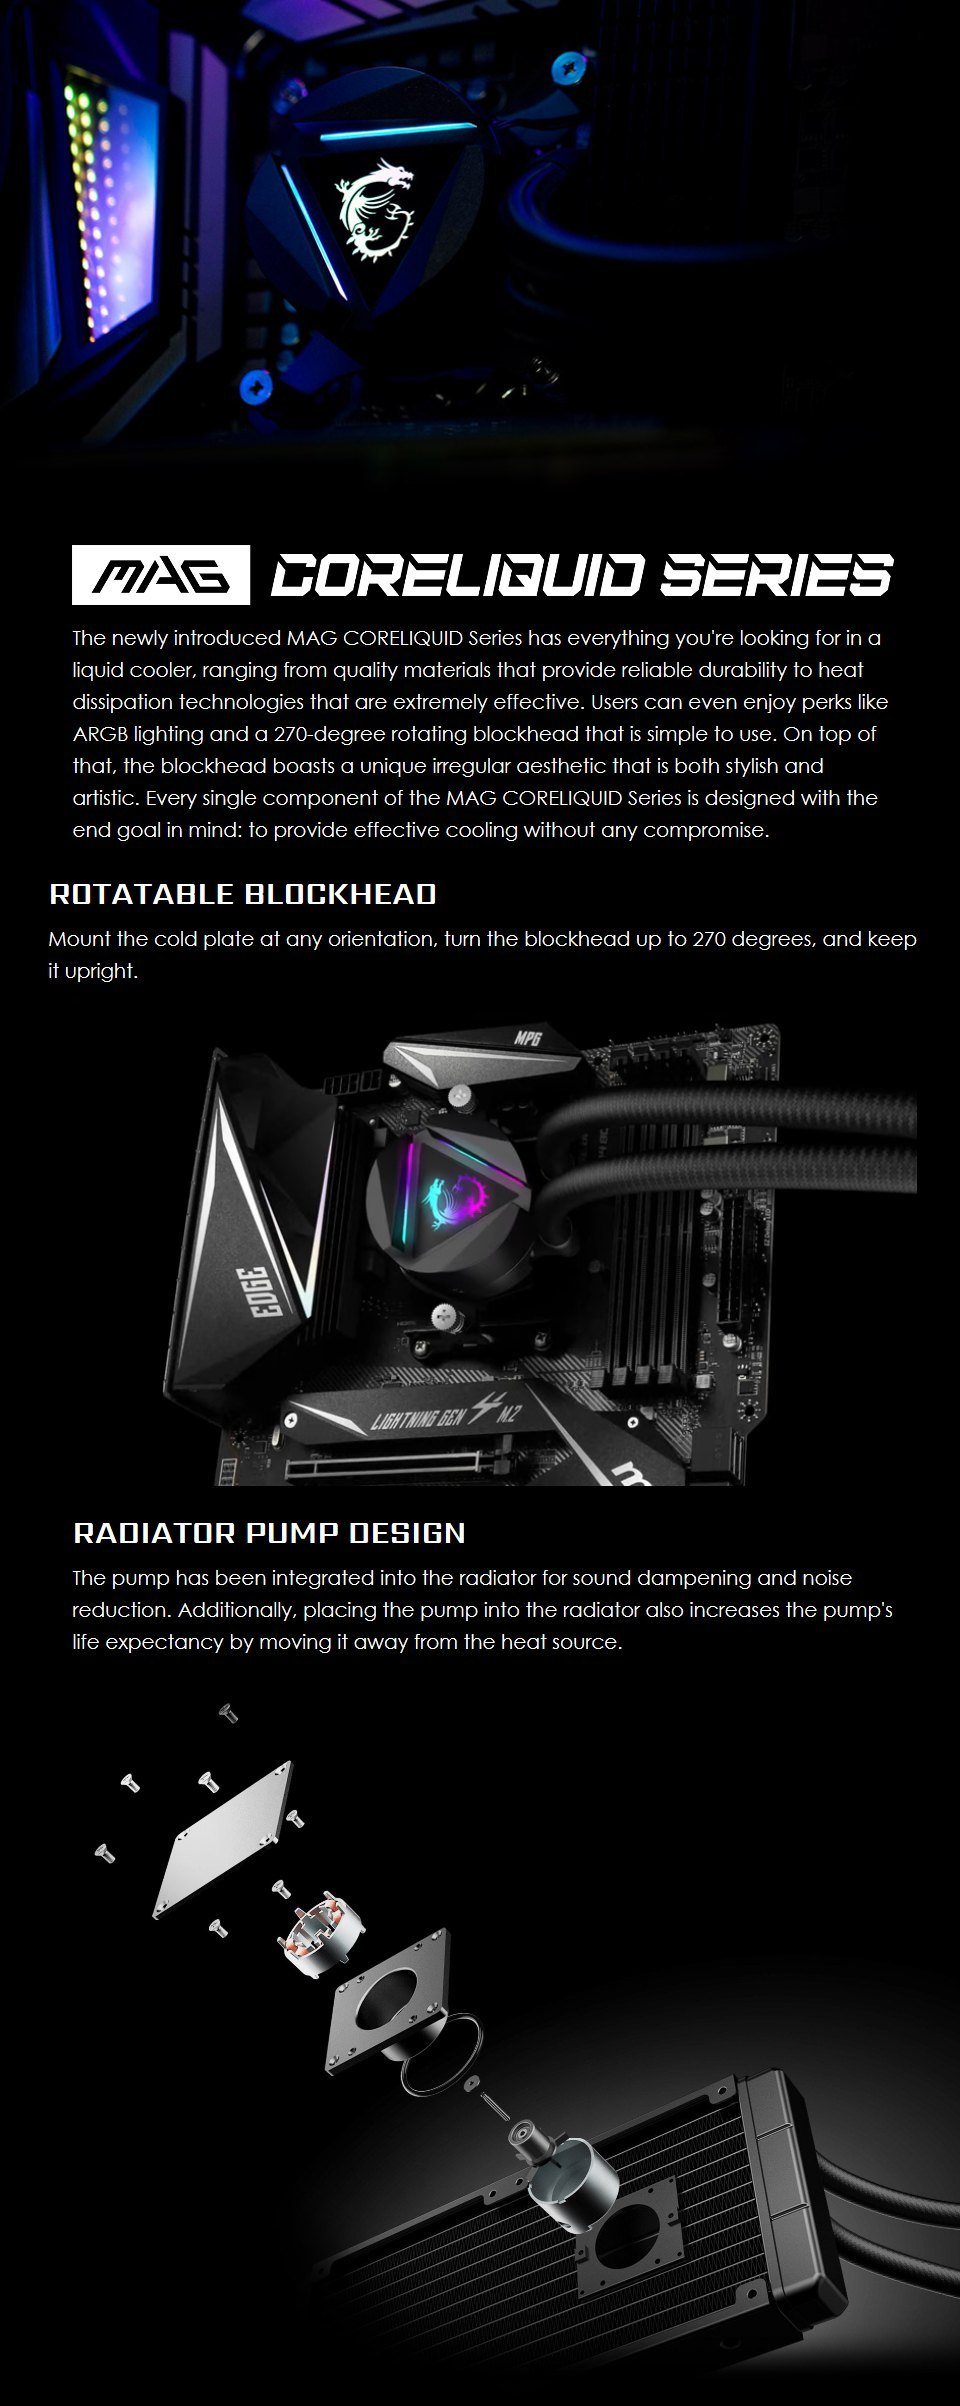 MSI MAG CORELIQUID 360R AIO Liquid CPU Cooler features